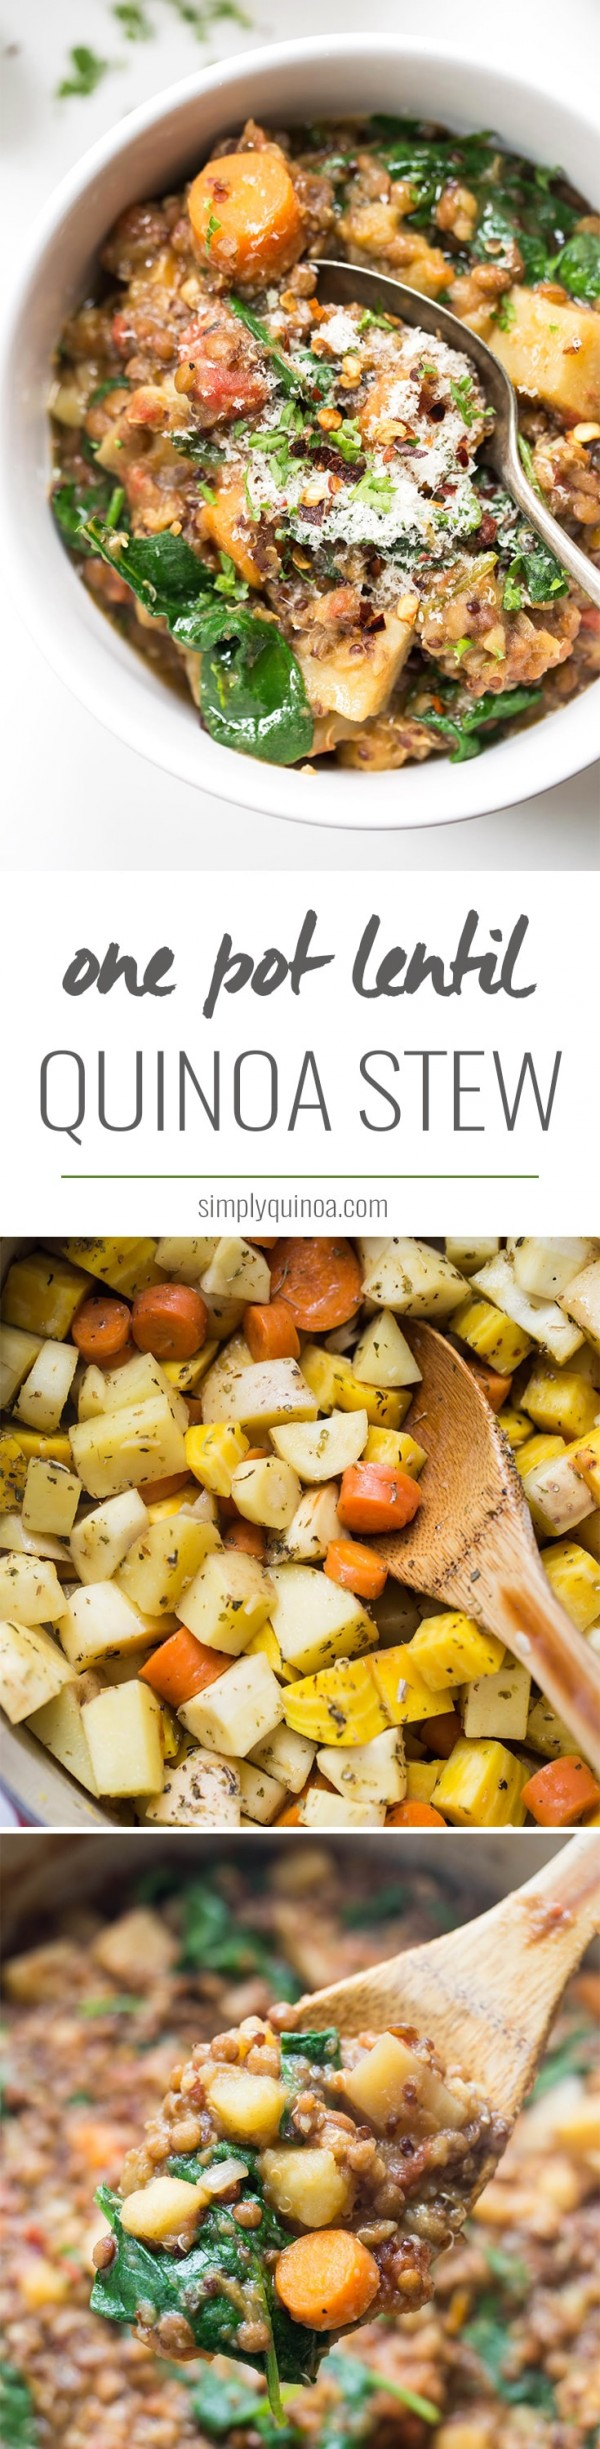 This root veggie & lentil quinoa stew uses only ONE POT and is made with only healthy, wholesome ingredients! [vegan]